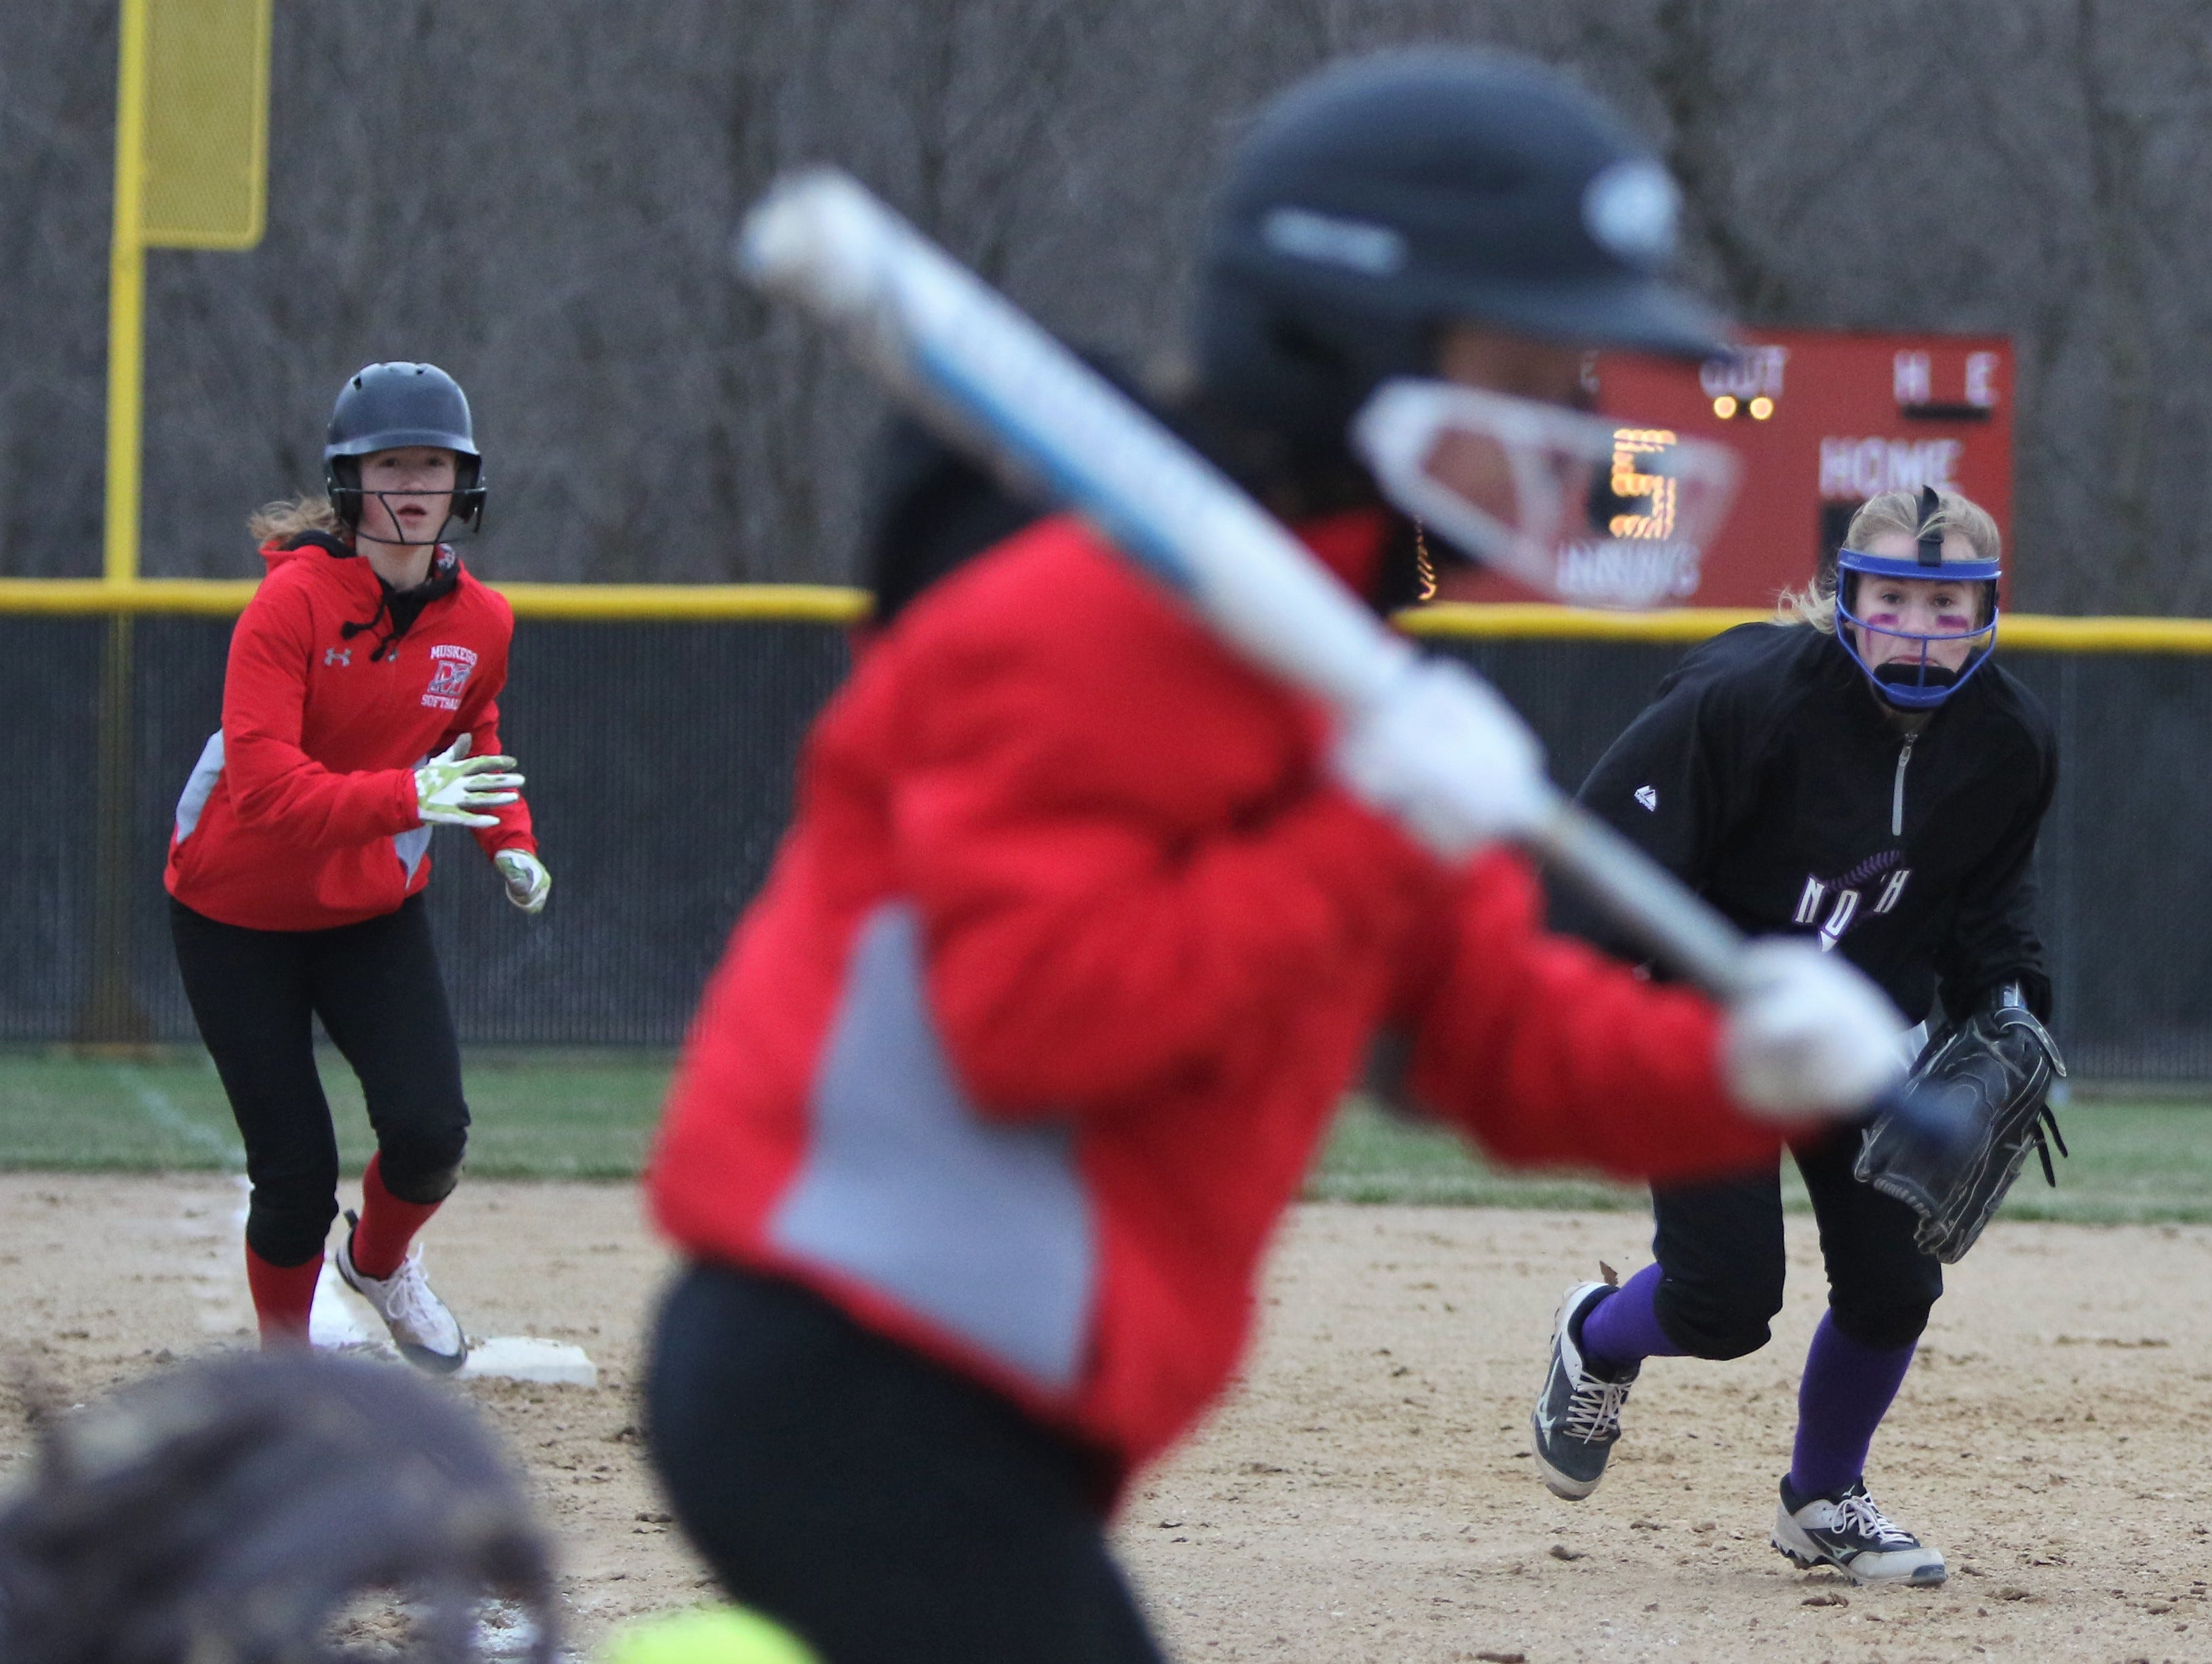 Players from Muskego and Waukesha North creep toward home plate as a pitch crosses for a strike during a game on April 12, 2019.